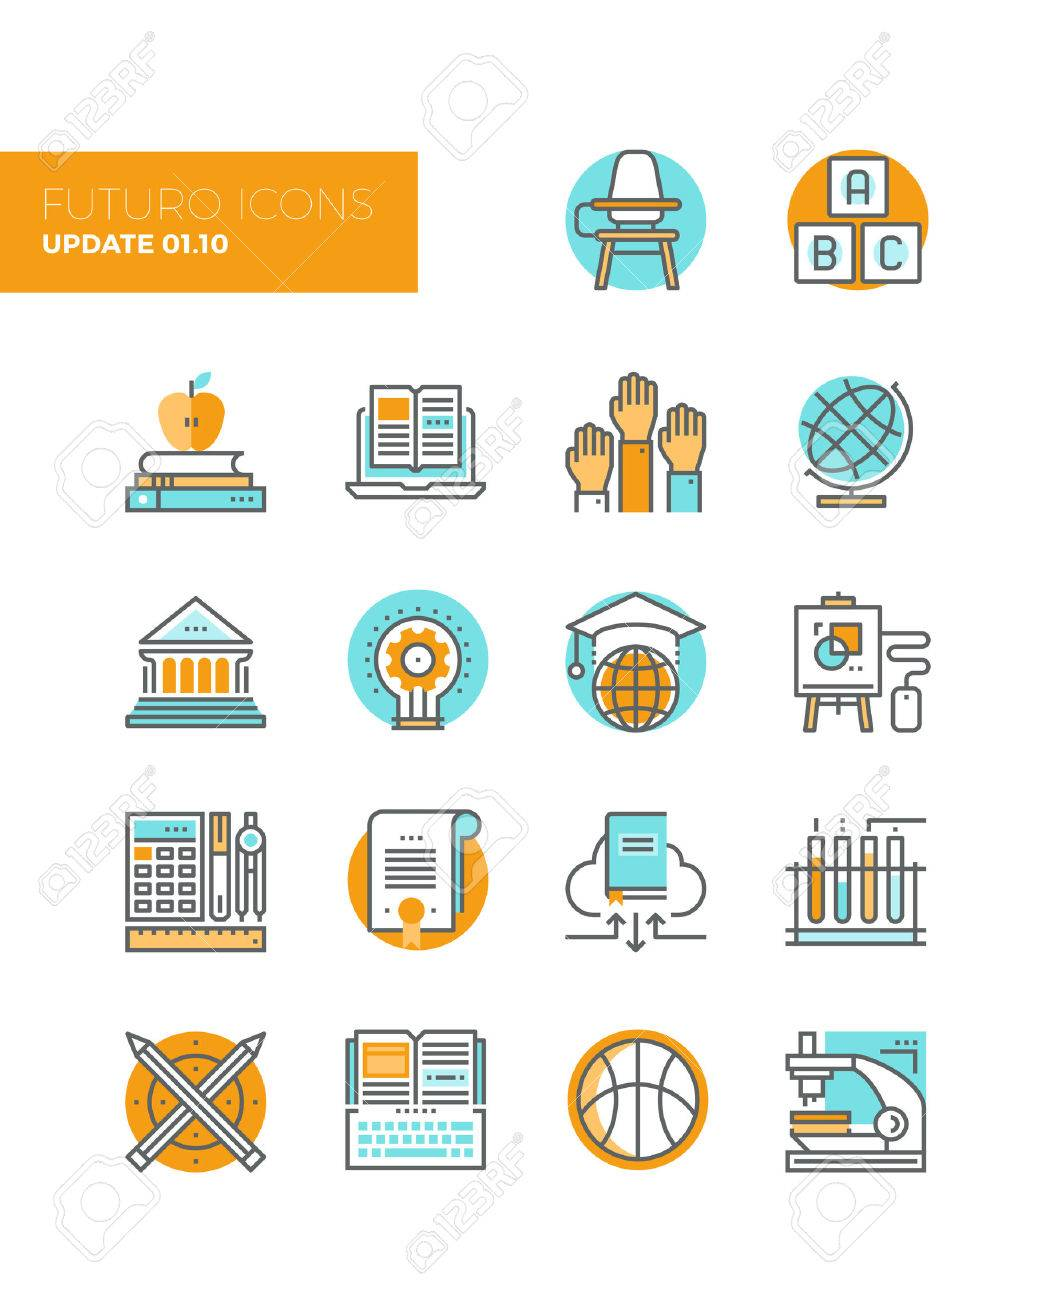 Line icons with flat design elements of education technology for teaching online, studying books with cloud library, innovation research. Modern infographic vector icon pictogram collection concept. Stock Vector - 43582313